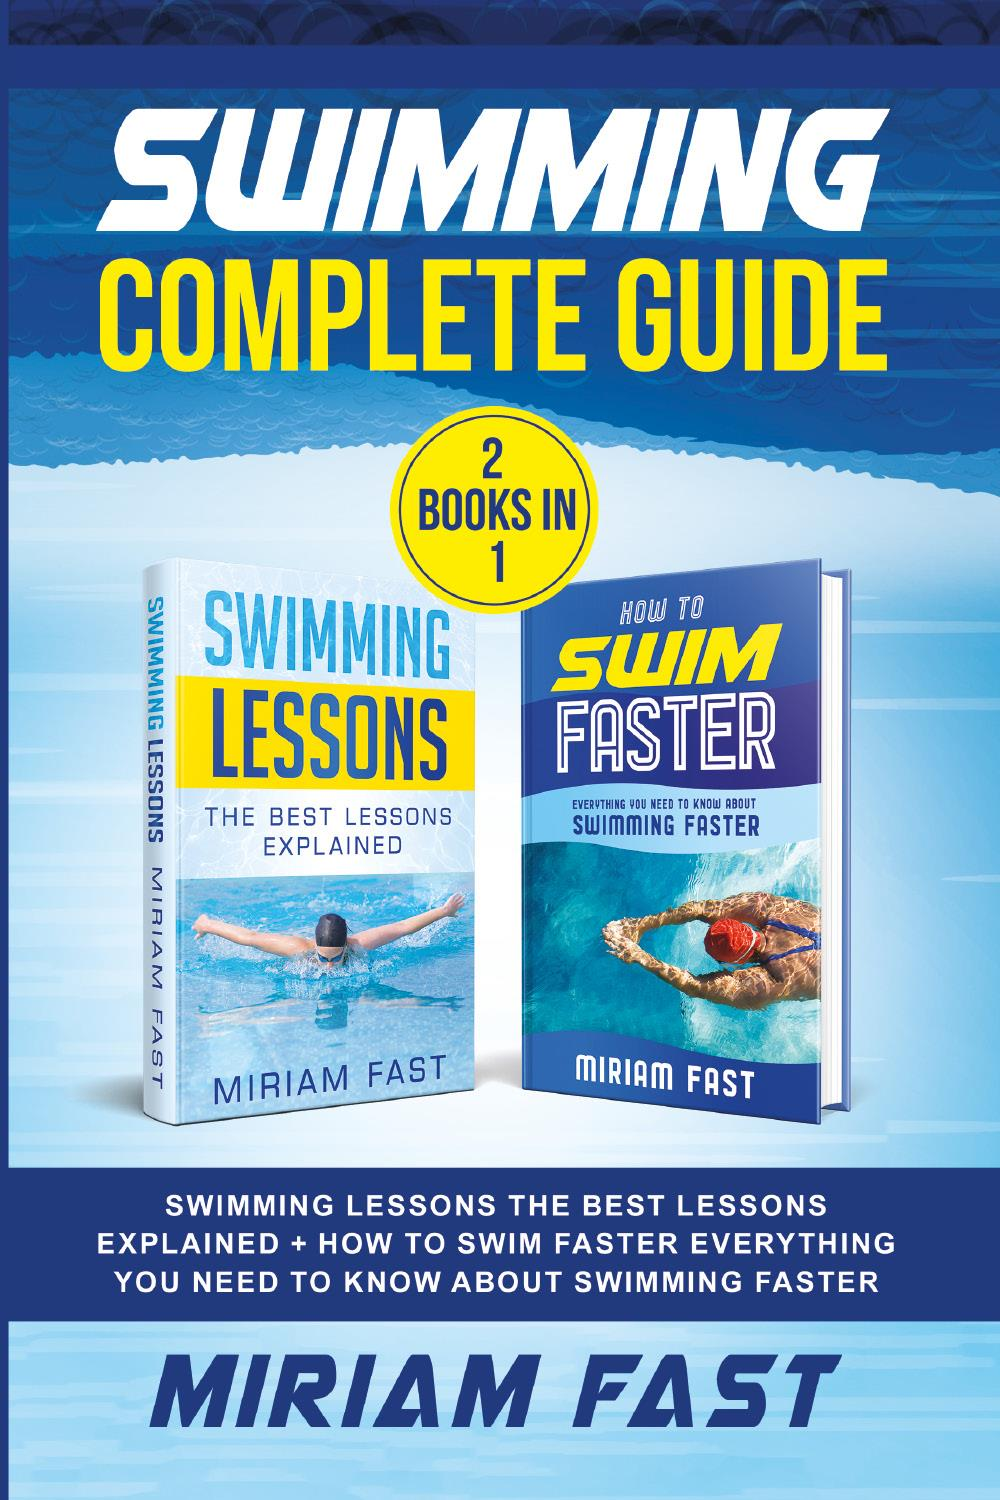 Swimming Complete Guide (2 Books in 1). Swimming Lessons The Best Lessons Explained + How To Swim Faster Everything You Need to Know about Swimming Faster